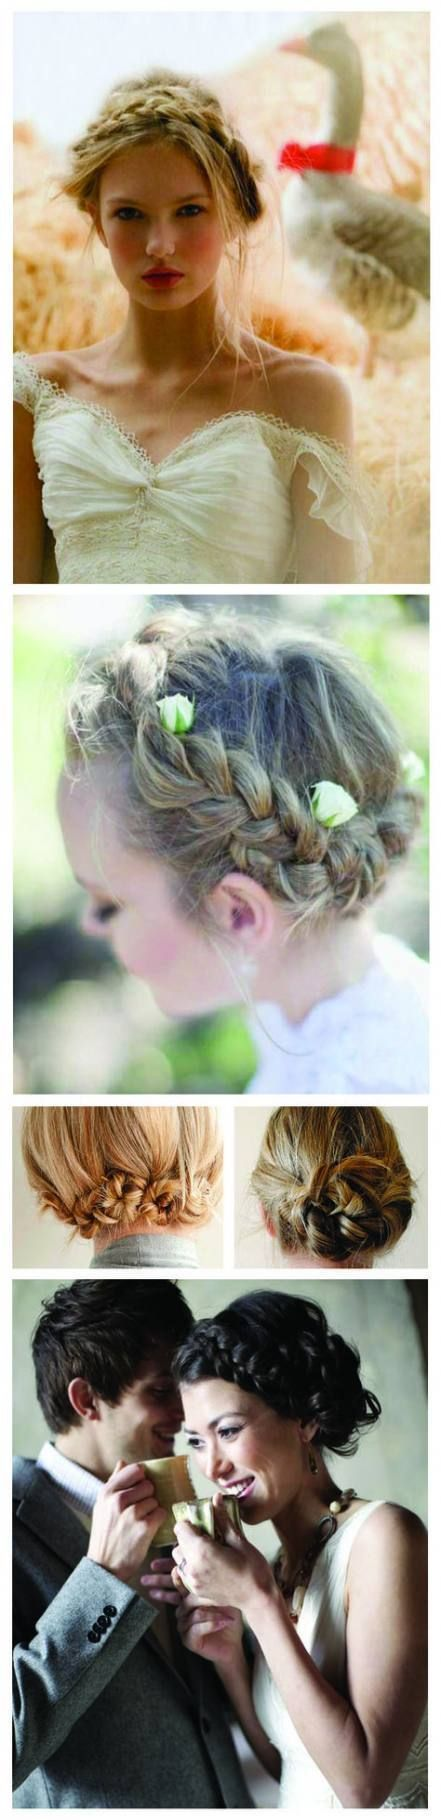 67 ideas for wedding hairstyles boho chic messy braids - Hairstyle  #Boho #Braids #Chic #Hairstyle #Hairstyles